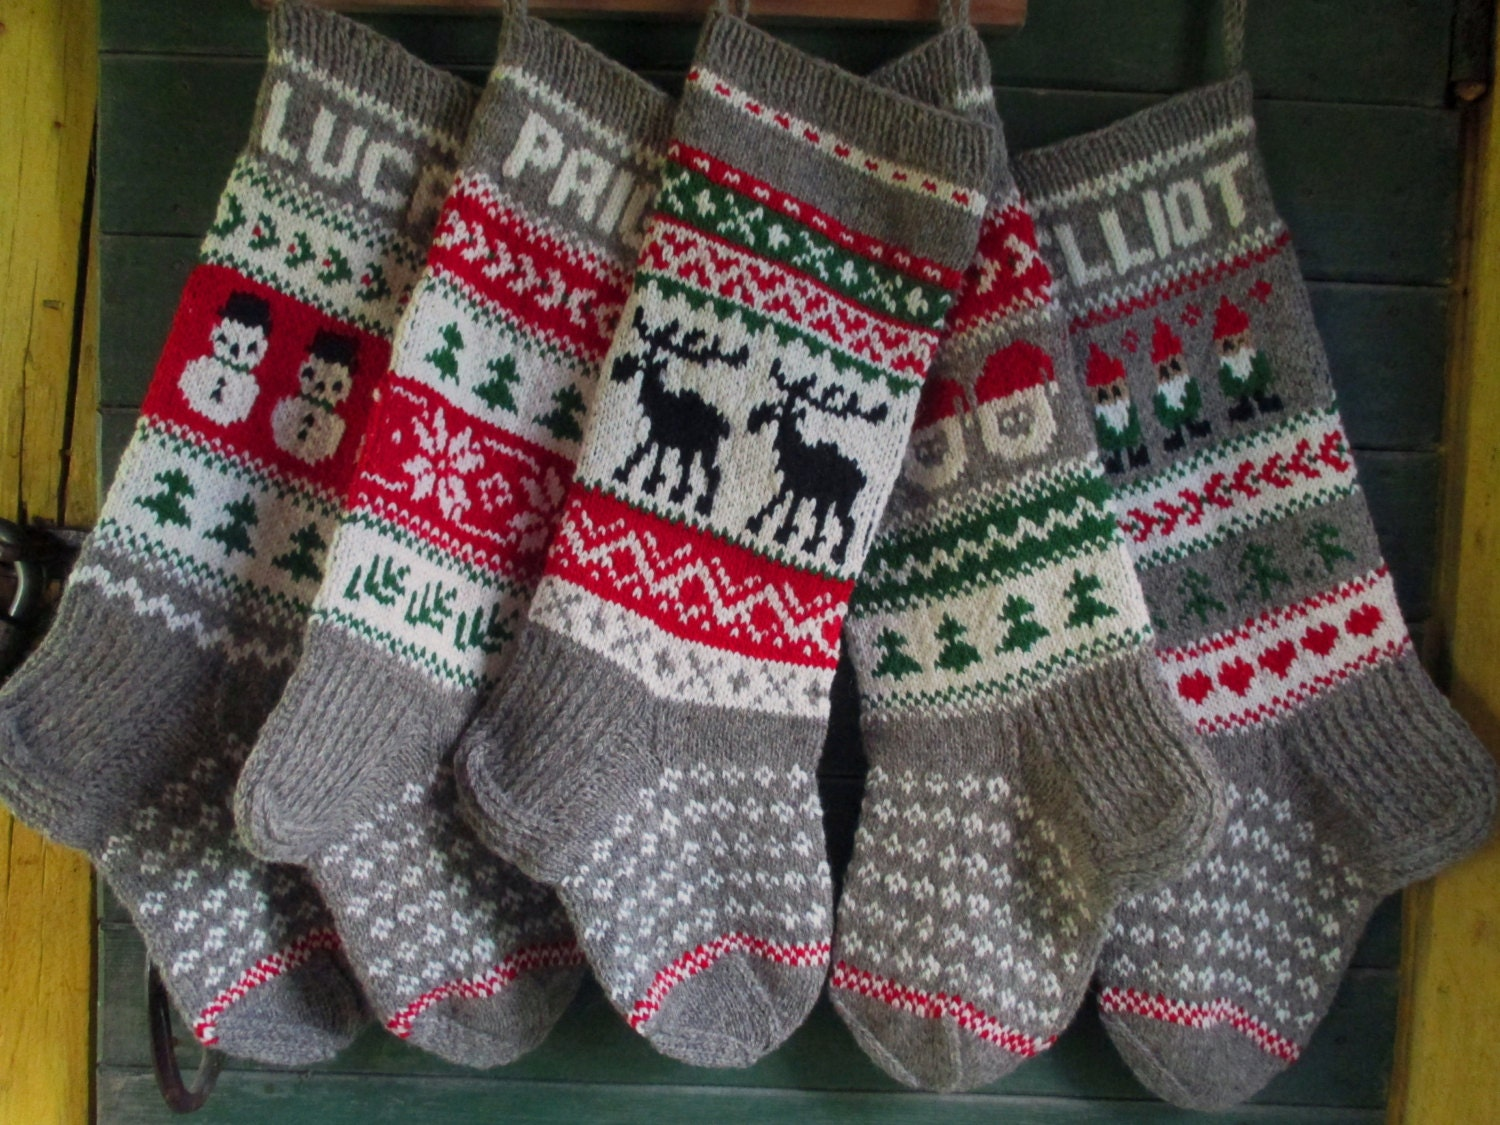 Outstanding Knit Christmas Stocking Pattern With Name Image ...